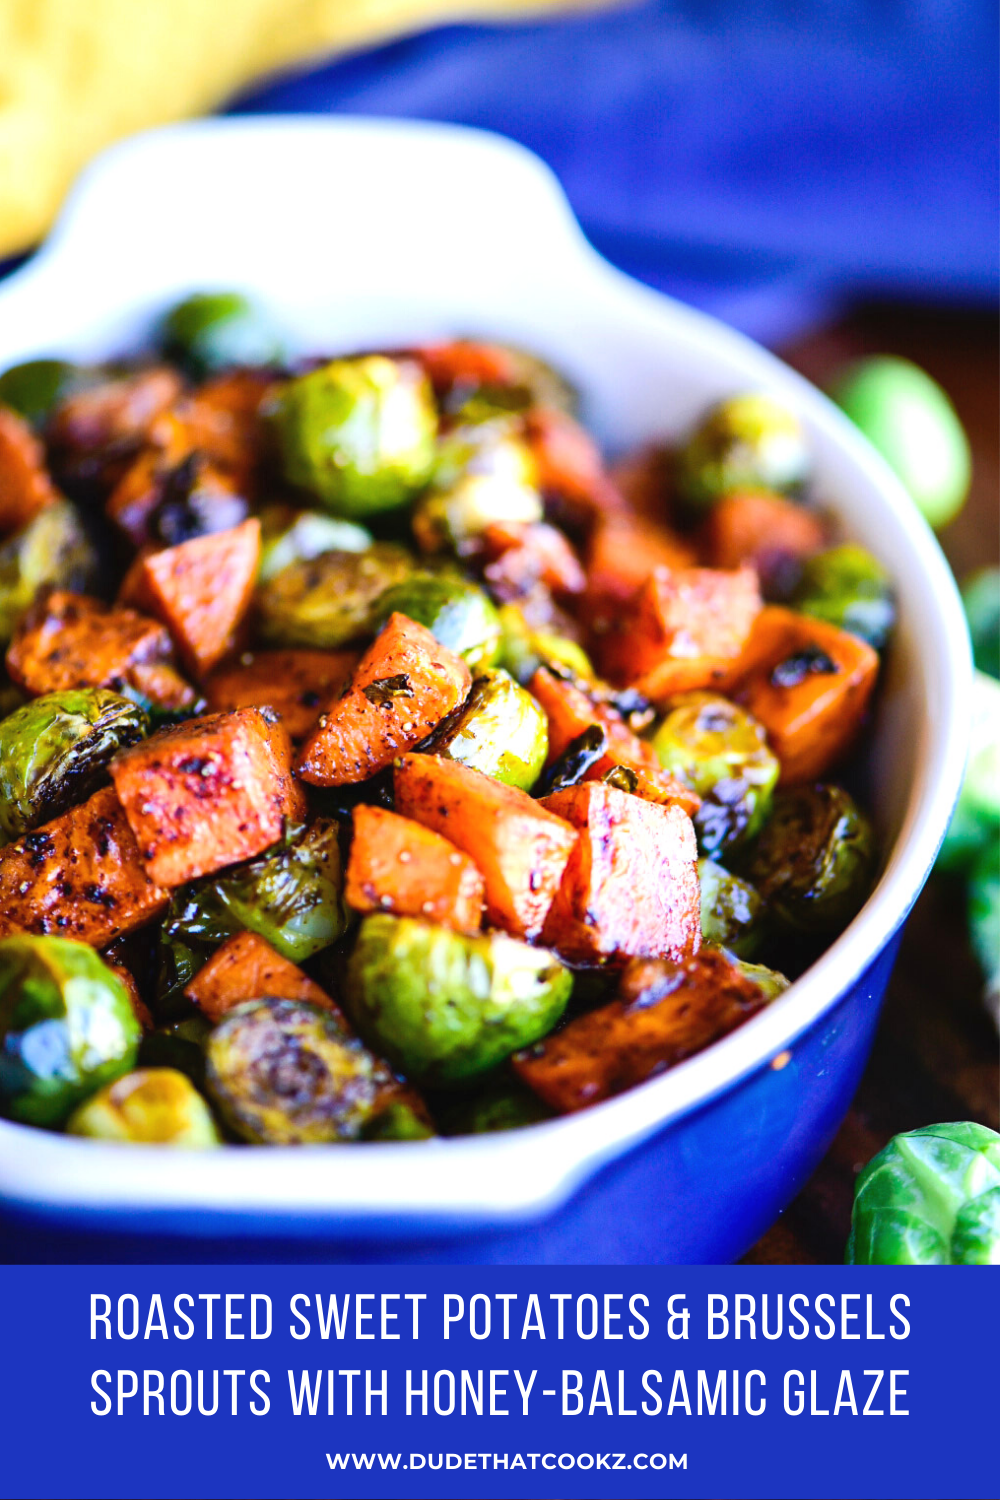 Roasted Sweet Potatoes & Brussels Sprouts with Honey-Balsamic Glaze